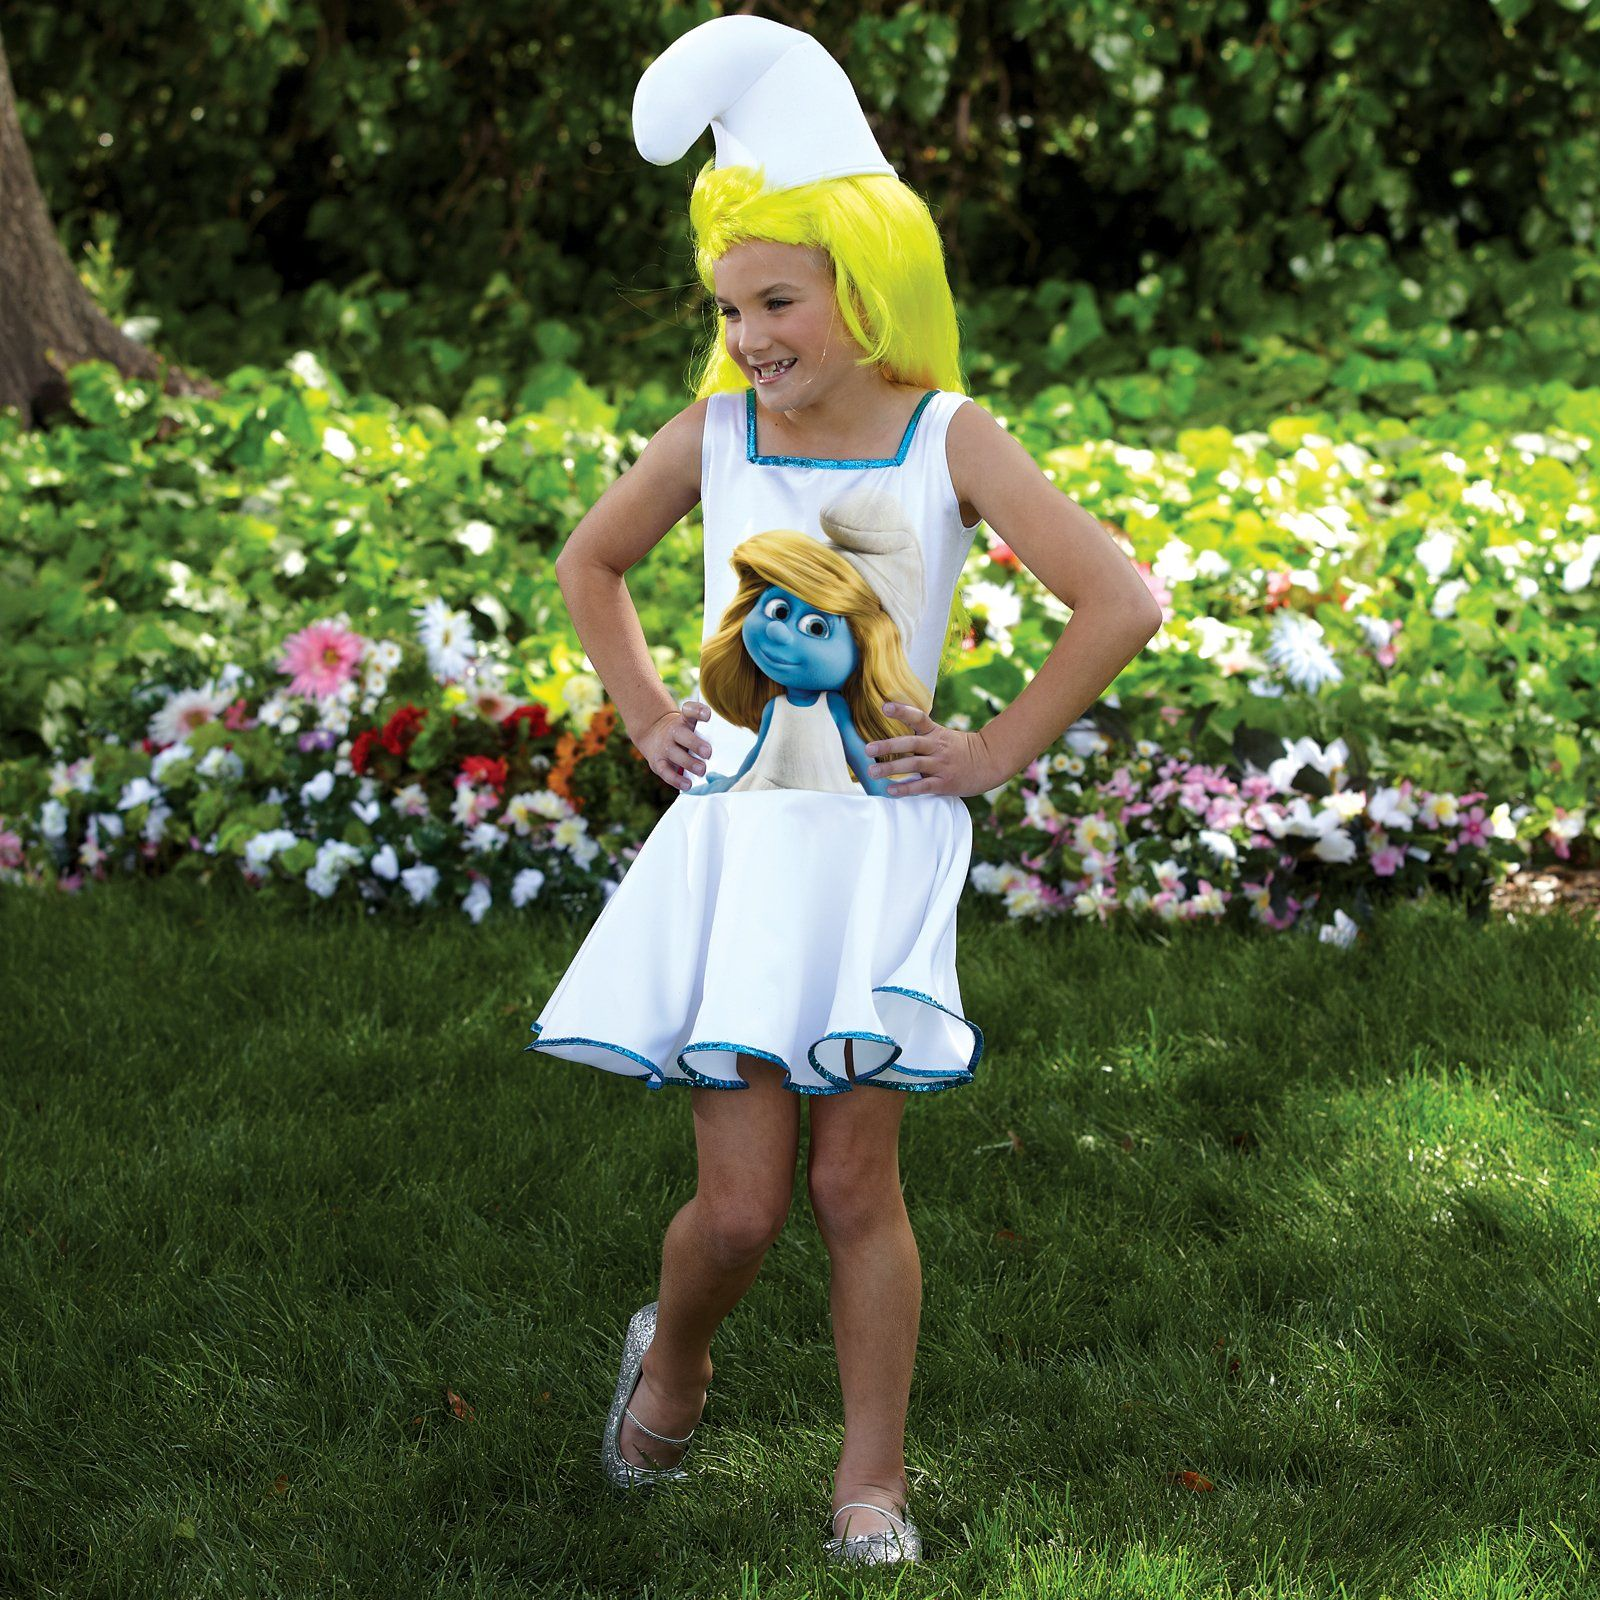 The Smurfs - Smurf Dress Kids Costume from BirthdayExpress.com ...